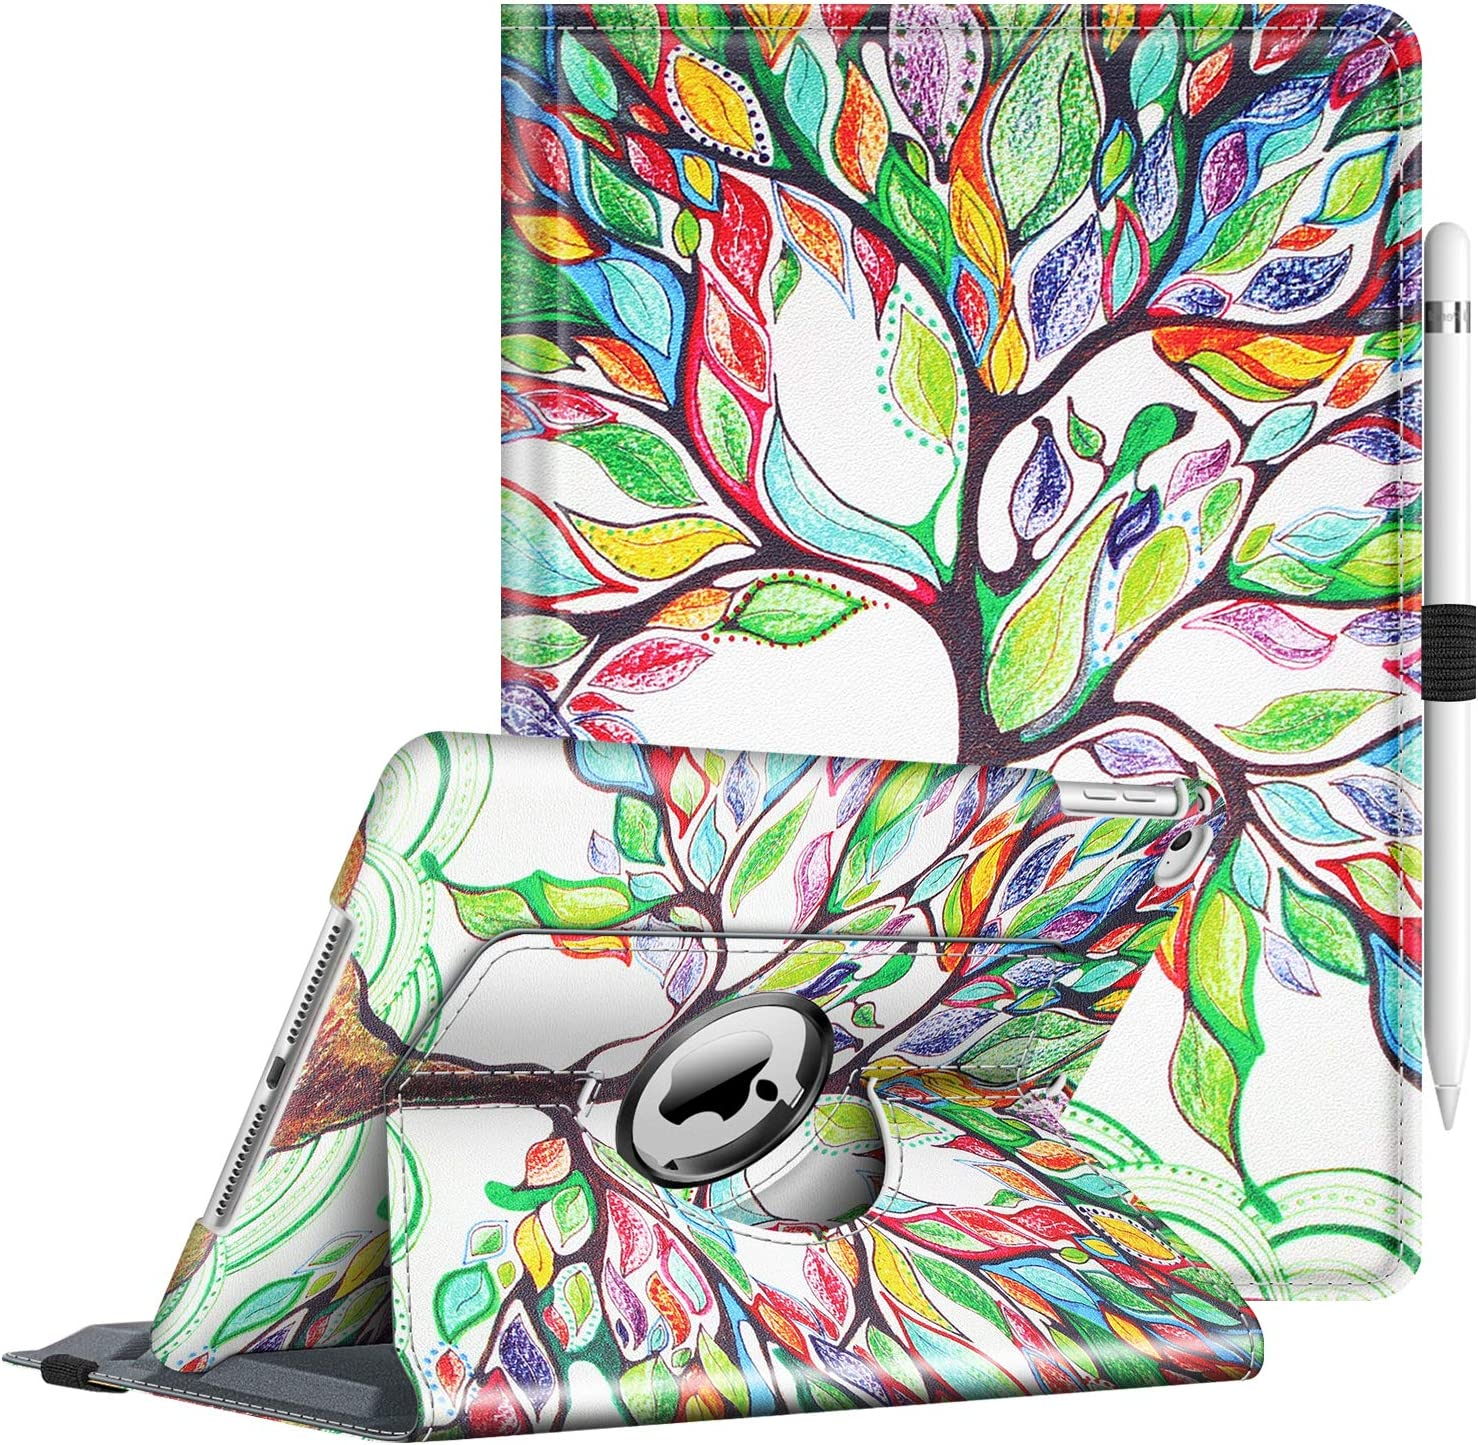 Fintie Case for iPad 9.7 2018 2017 / iPad Air 2 / iPad Air - 360 Degree Rotating Stand Protective Cover with Auto Sleep Wake for iPad 9.7 inch (6th Gen, 5th Gen) / iPad Air 2 / iPad Air, Love Tree